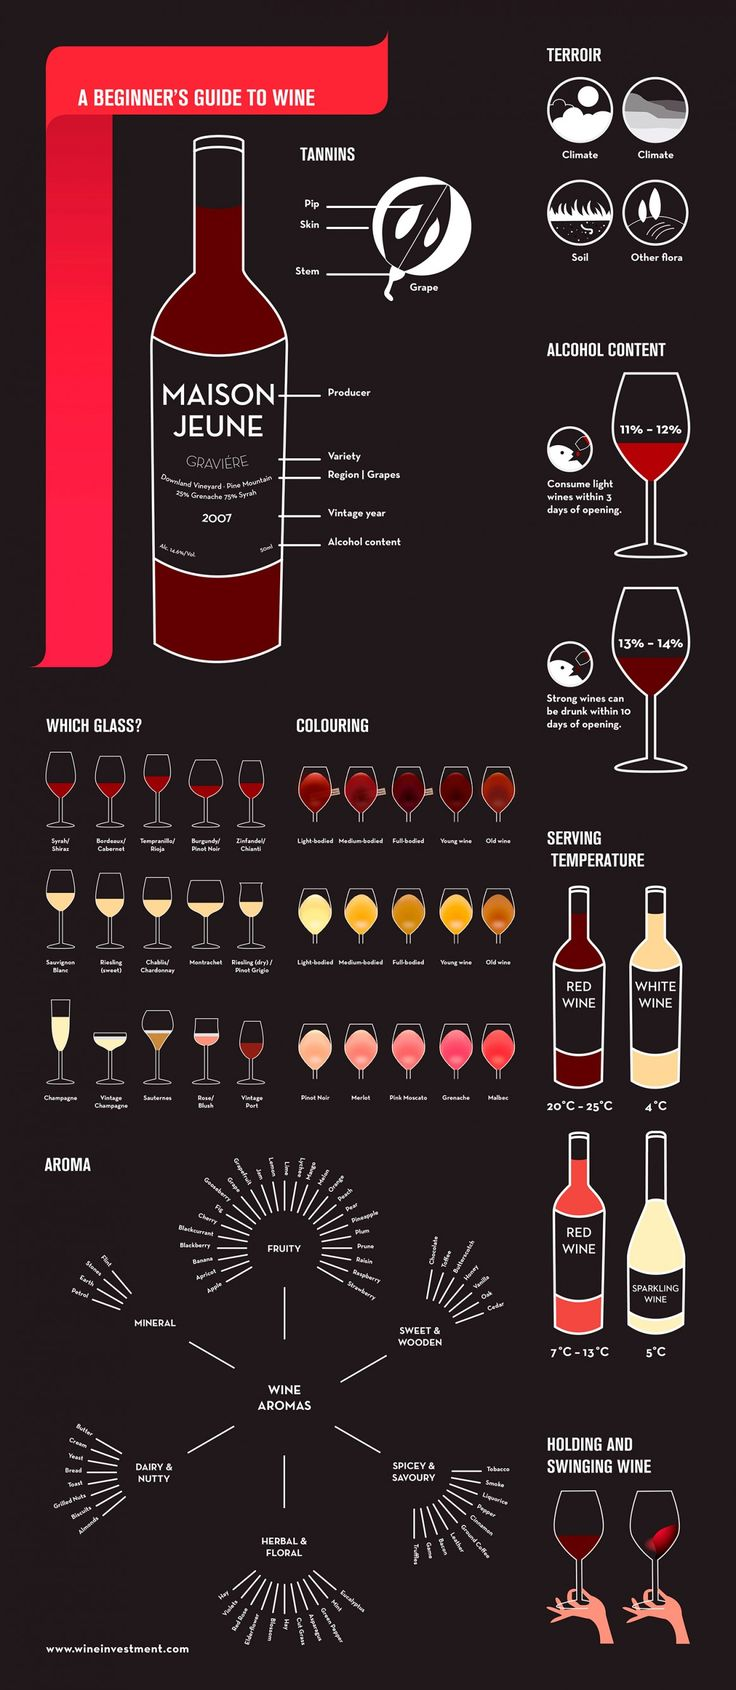 A Begginer's Guide to Wine